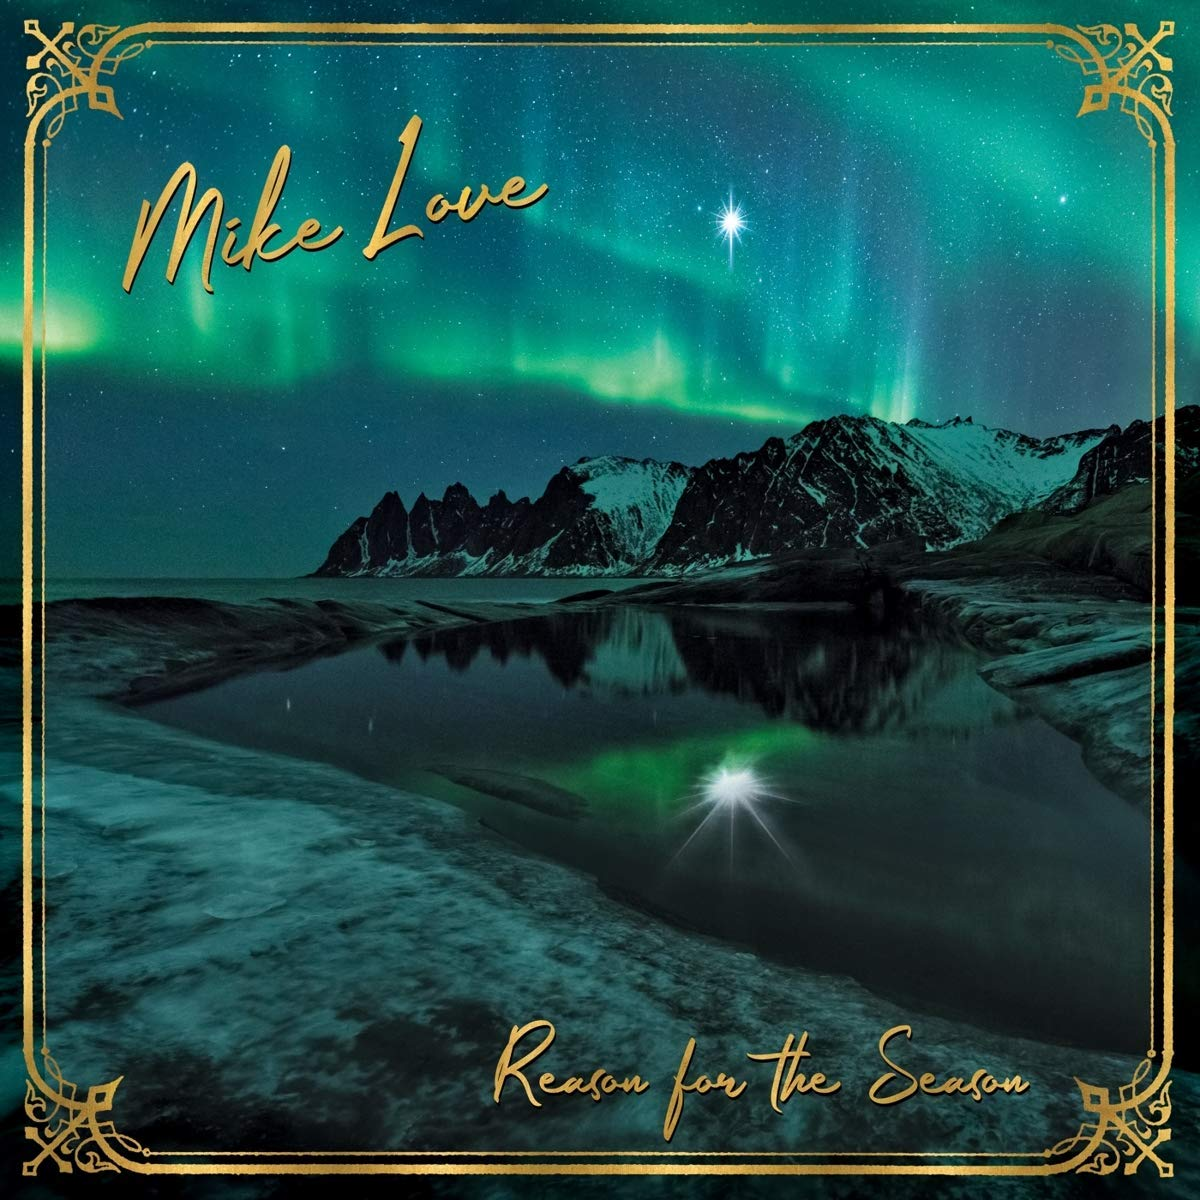 Pochette Album Mike Love Reason To The Season